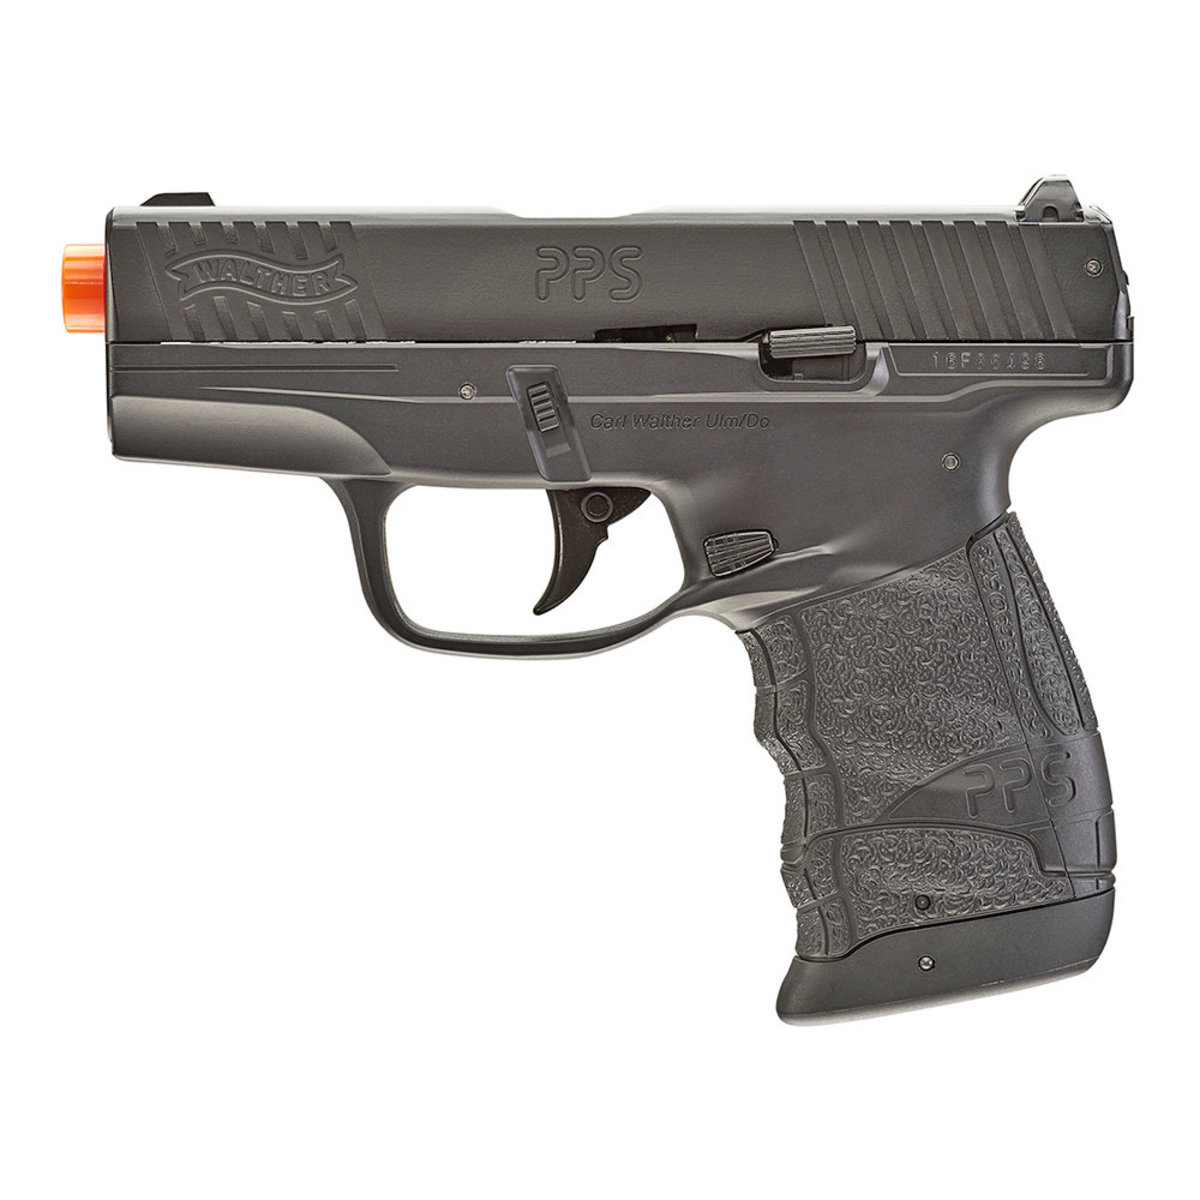 View larger image of Umarex Walther PPS M2 CO2 Half Blowback Airsoft Pistol